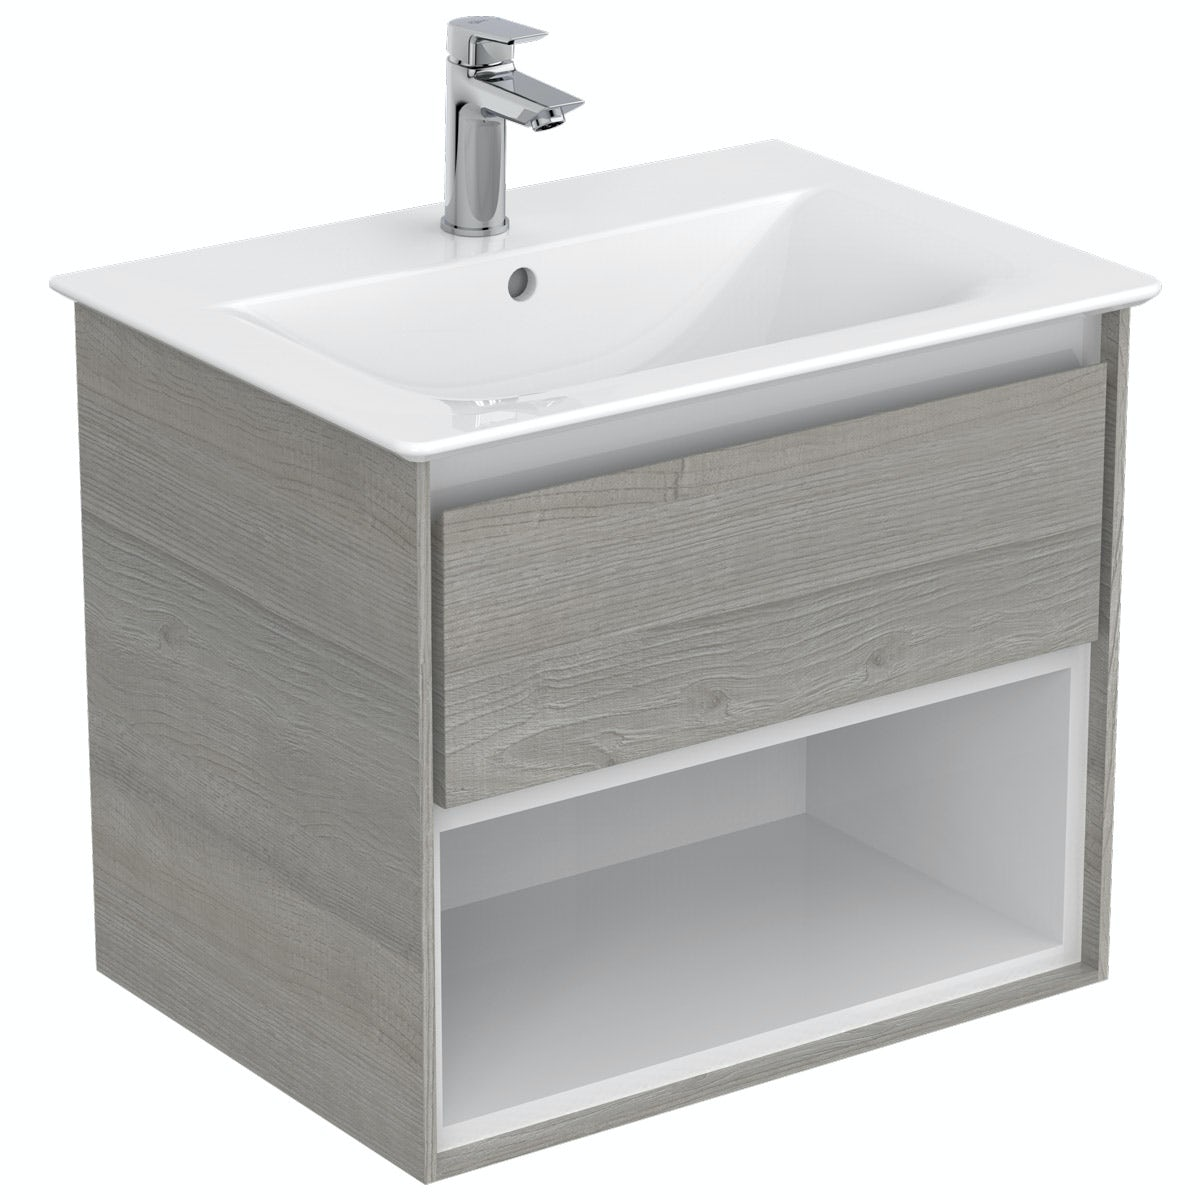 Ideal Standard Concept Air wood light grey and matt white open wall hung vanity unit and basin 600mm